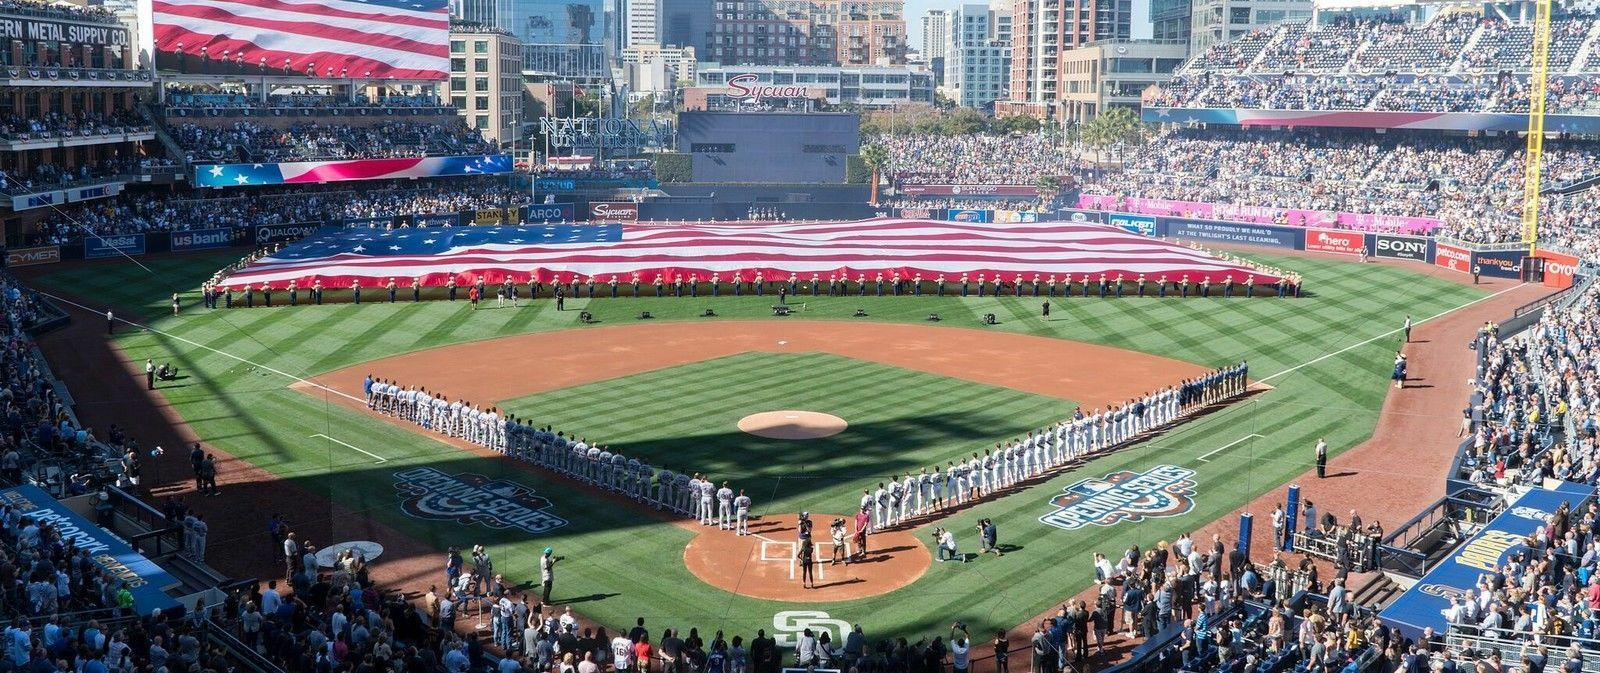 Pittsburgh Pirates at San Diego Padres